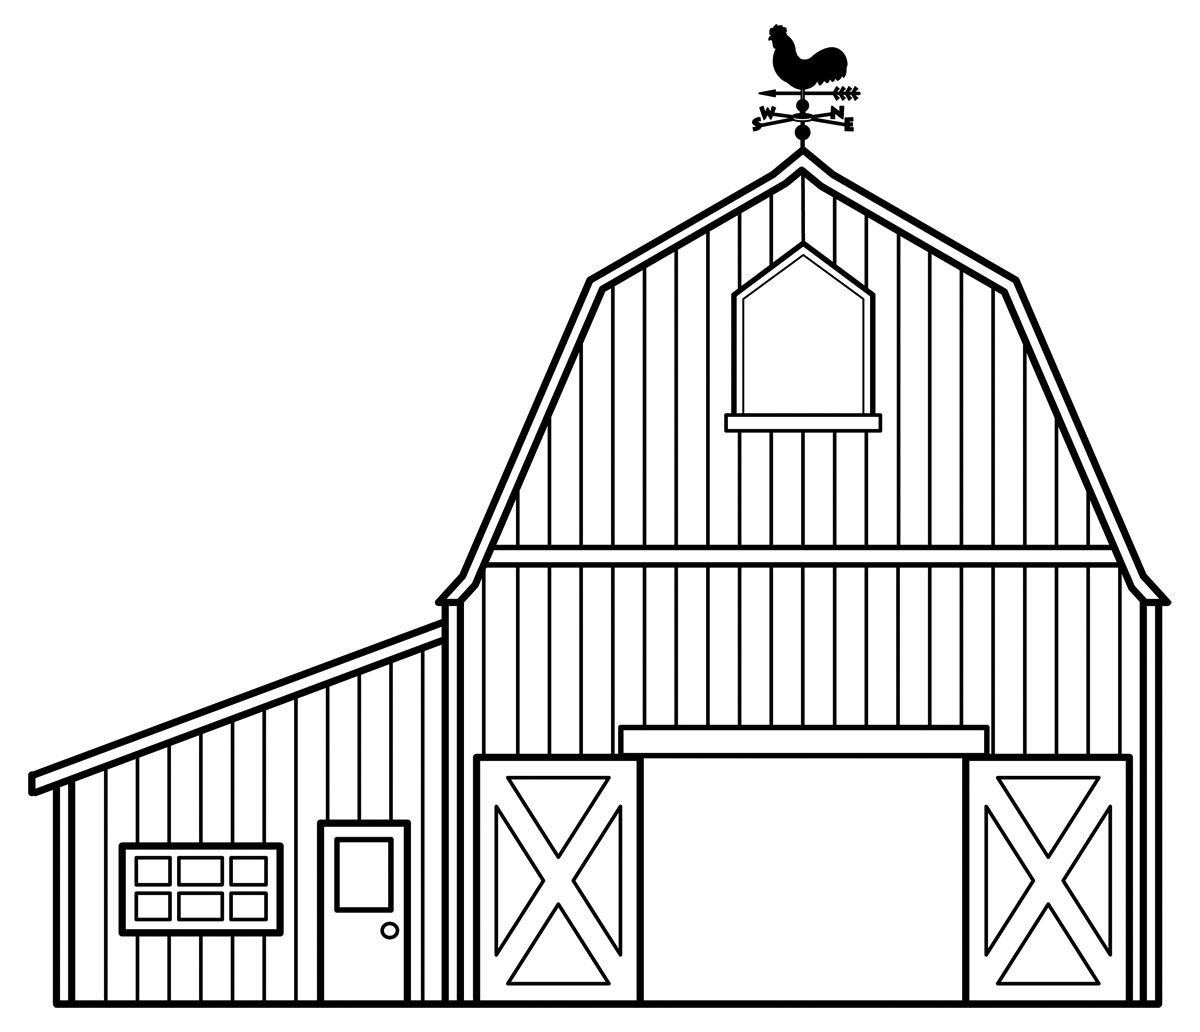 laugh of the day how a city man farms farm coloring pageshay barnwhite - Barns Coloring Pages Farm Silos